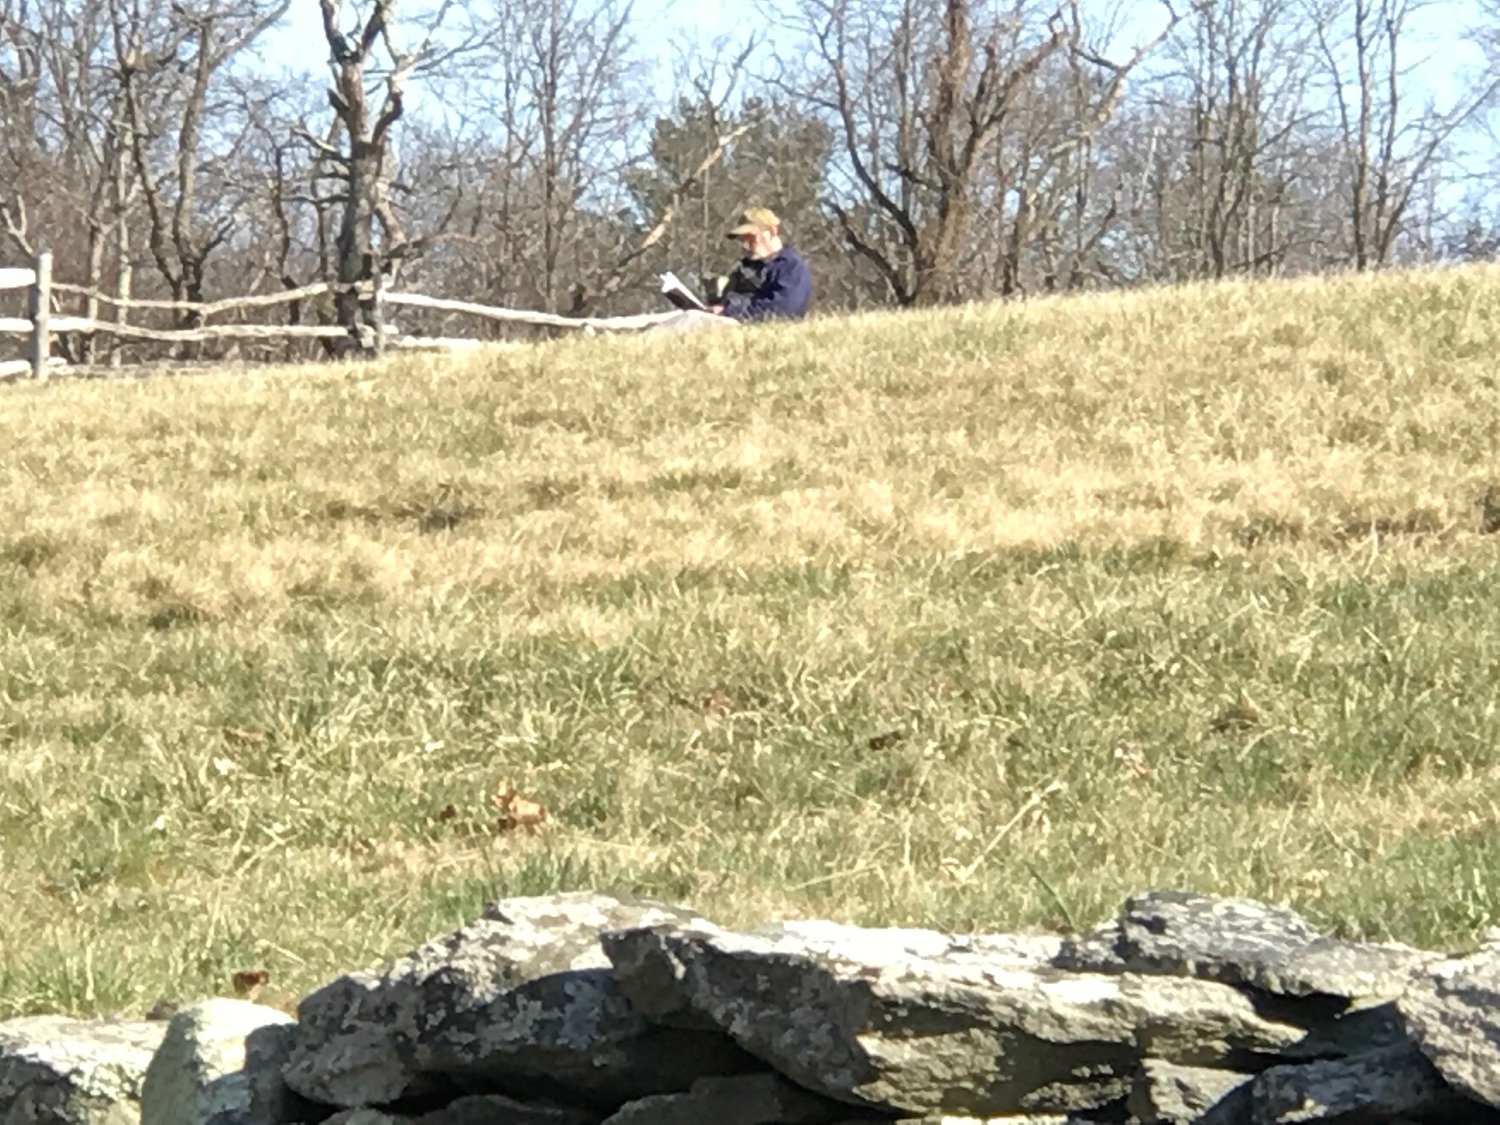 Meanwhile, away from busy Colt State Park, a man finds a quiet place to read at Coggeshall Farm in the late afternoon sunshine.